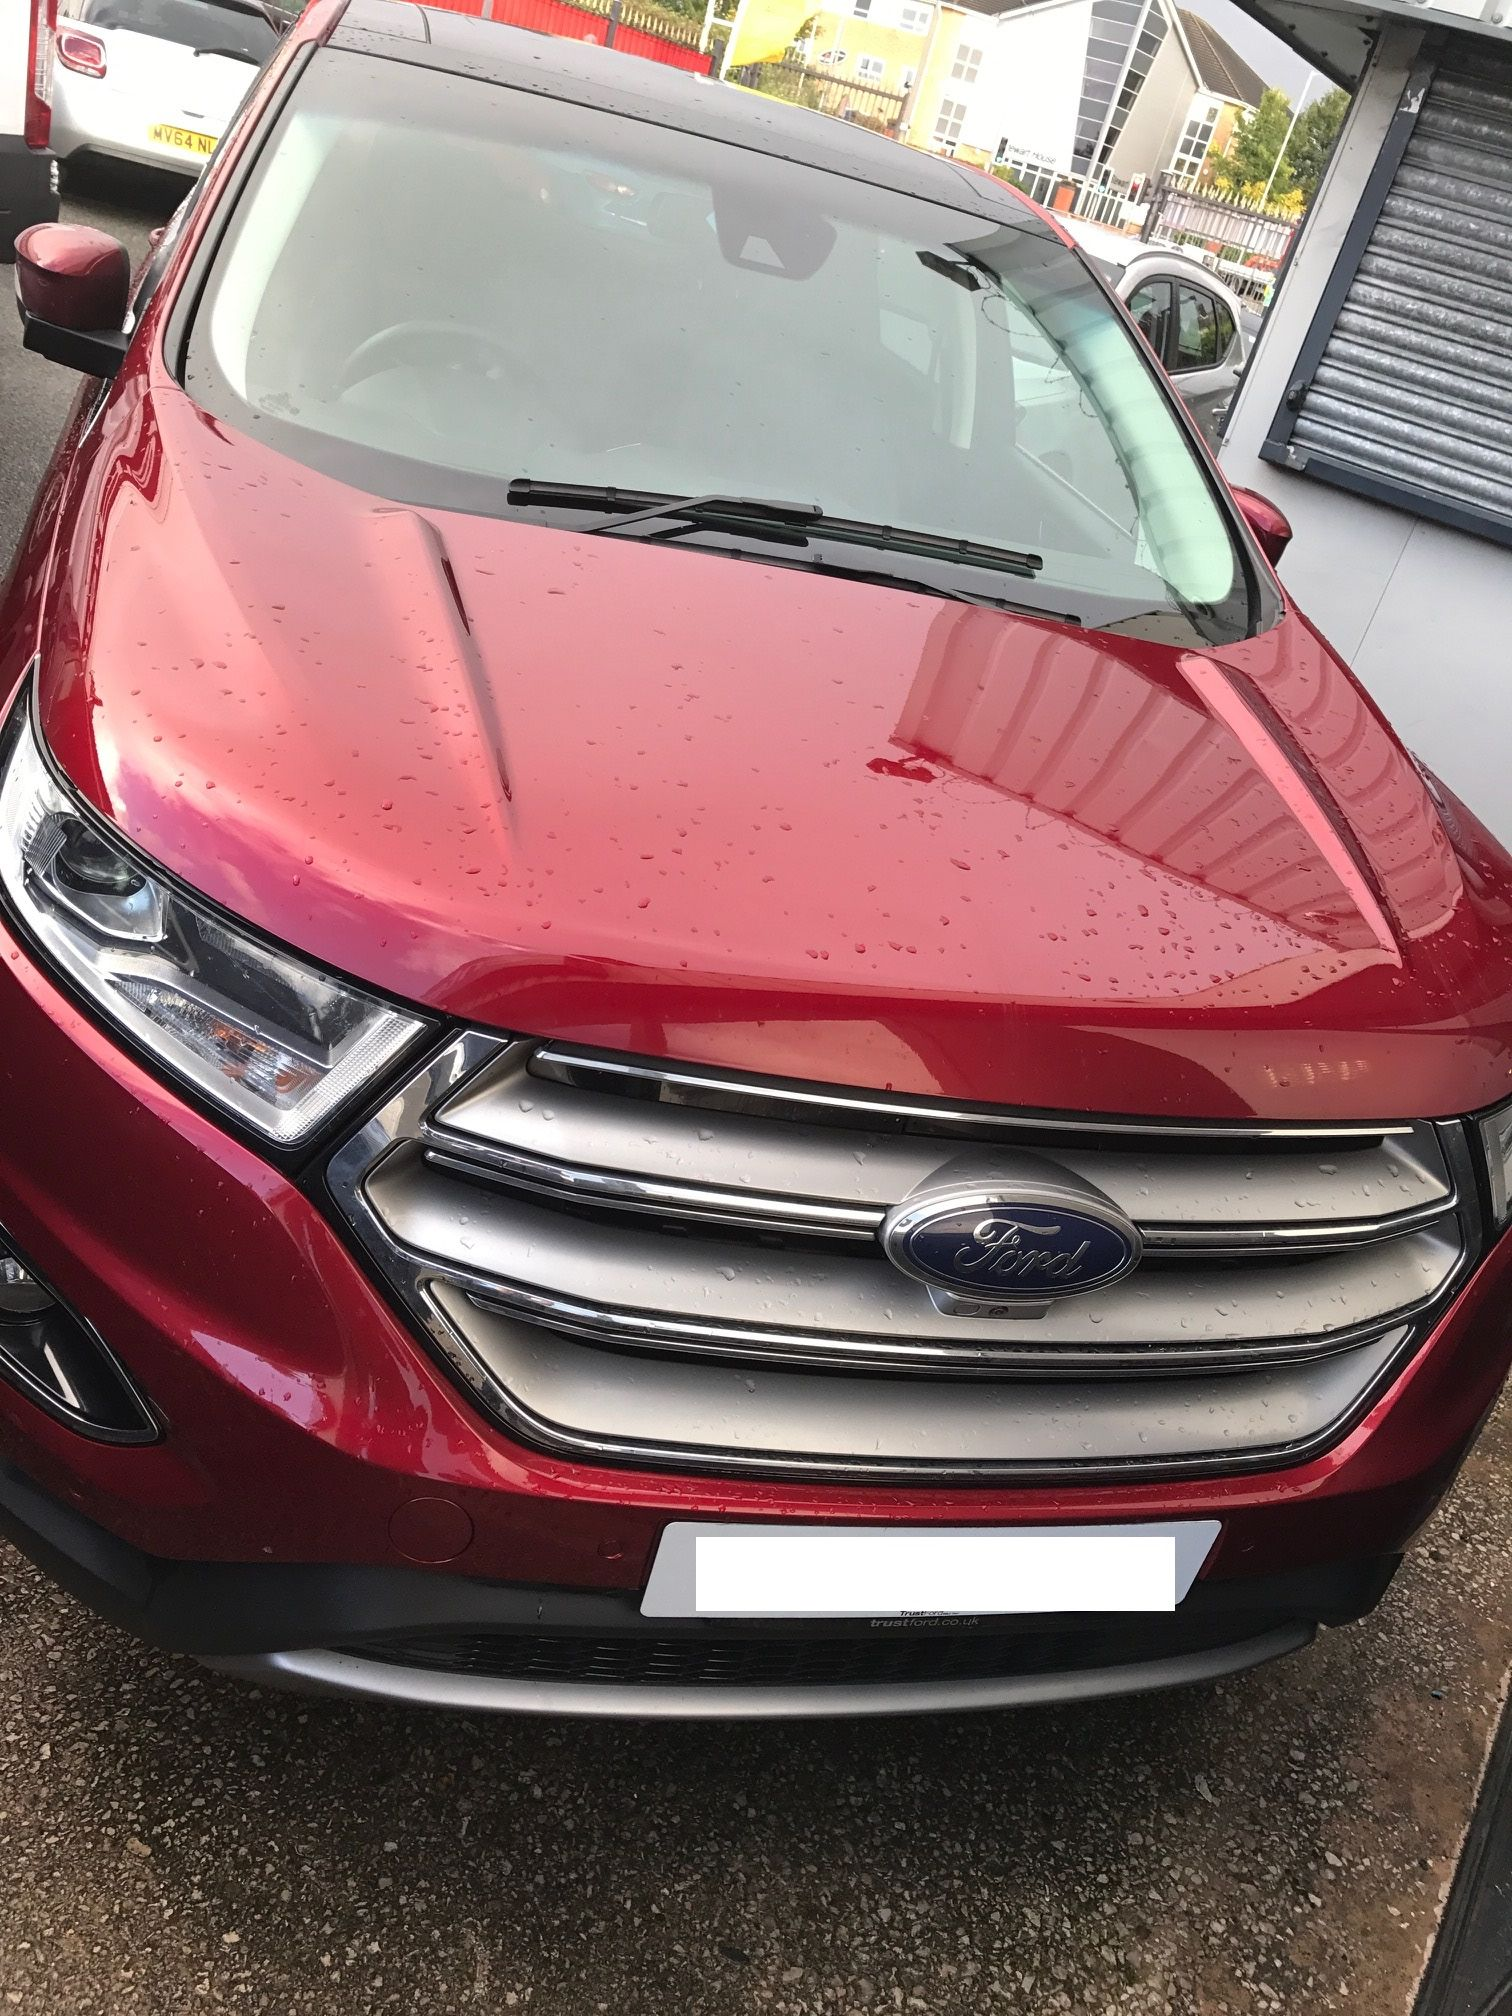 The Ford Edge Leasing Deal One Of The Many Cars And Vans Available To